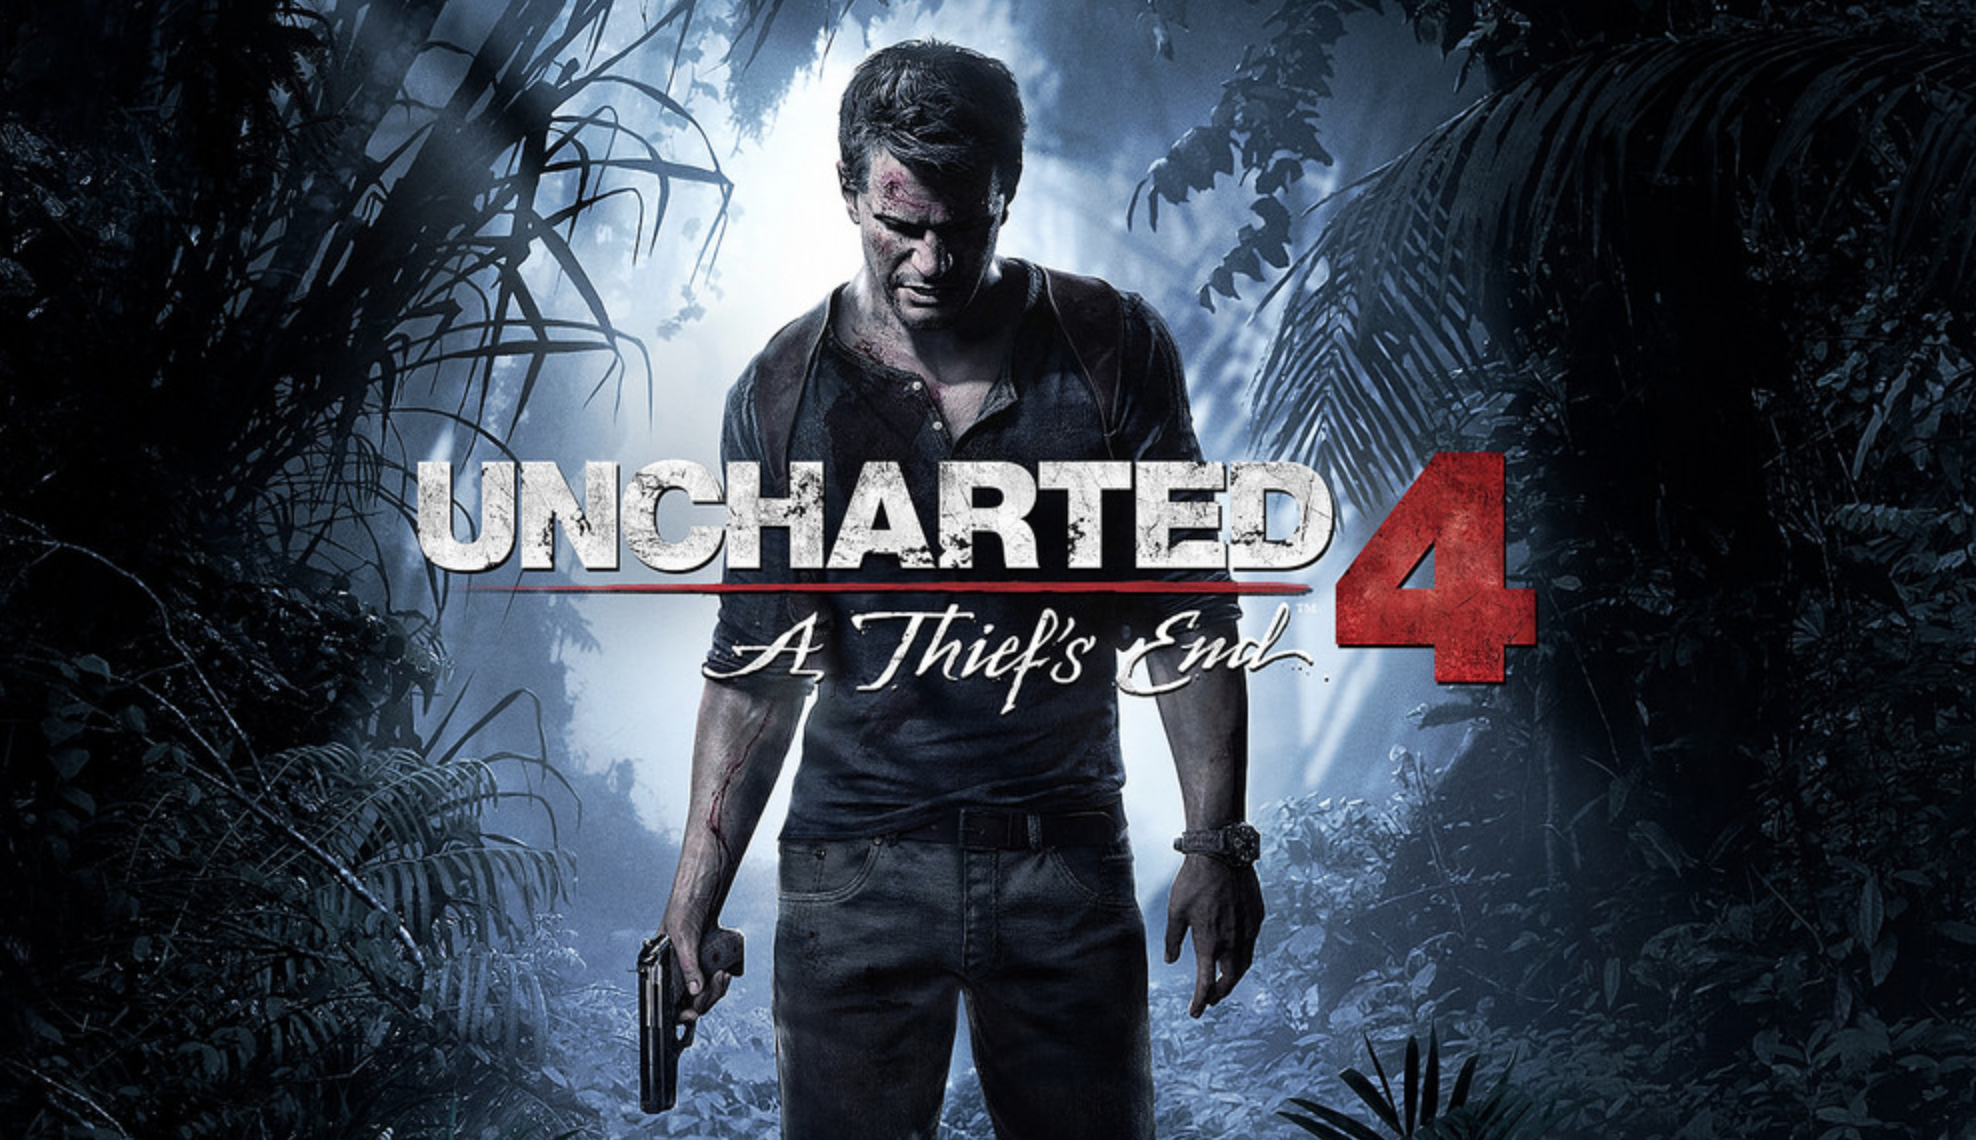 'Uncharted 4' Story DLC Announcement Coming Soon, Says Troy Baker